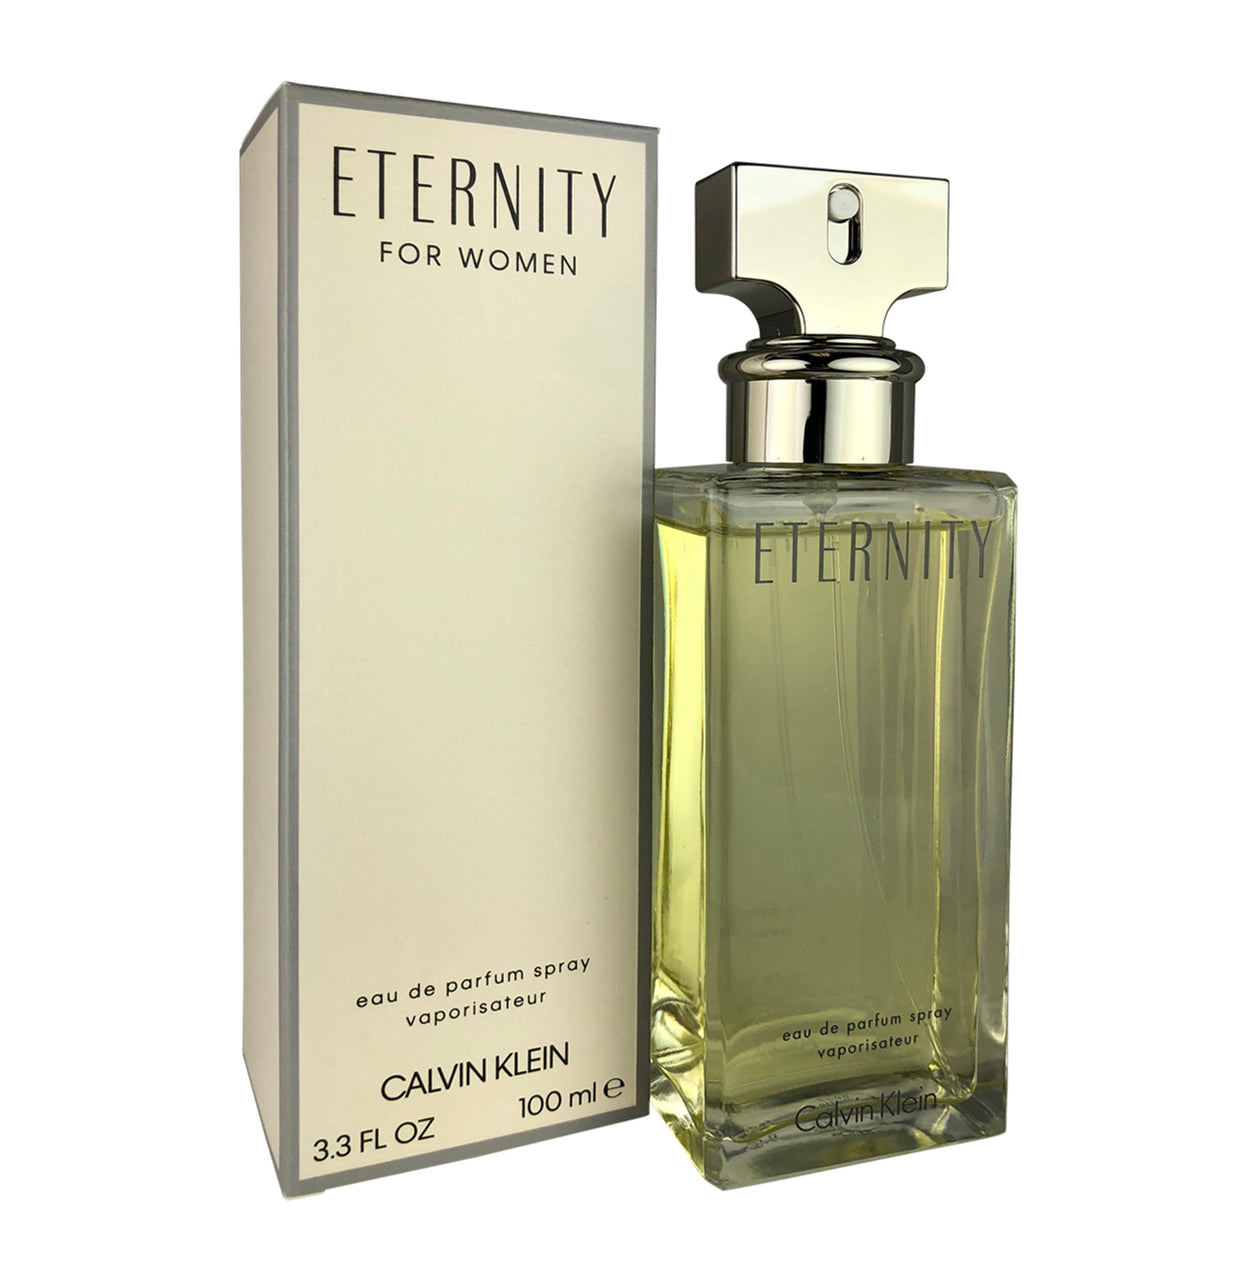 CK Eternity for Women by Calvin Klein 3.4 oz Eau de Parfum Spray